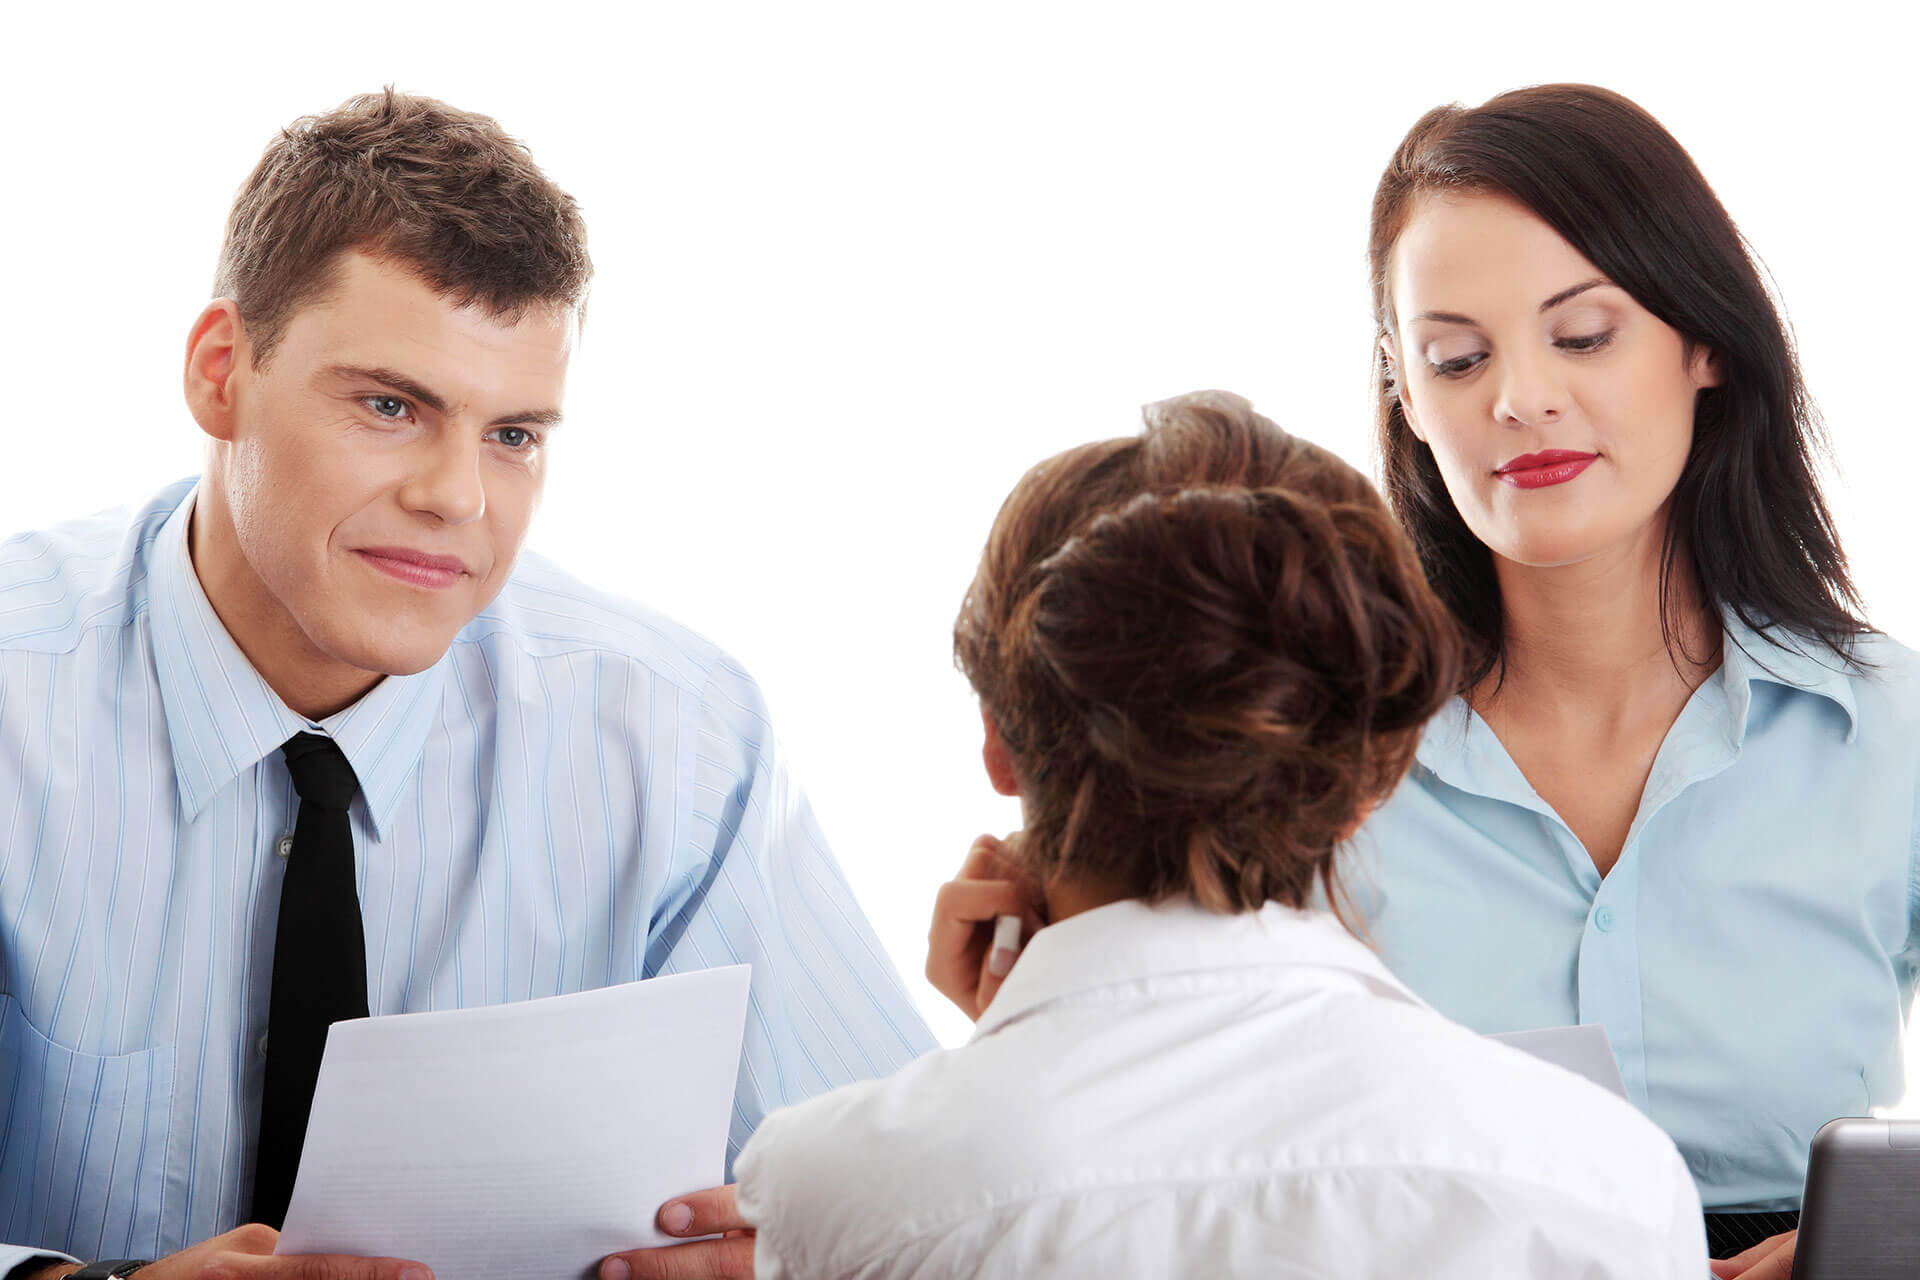 Picture of two people getting advice